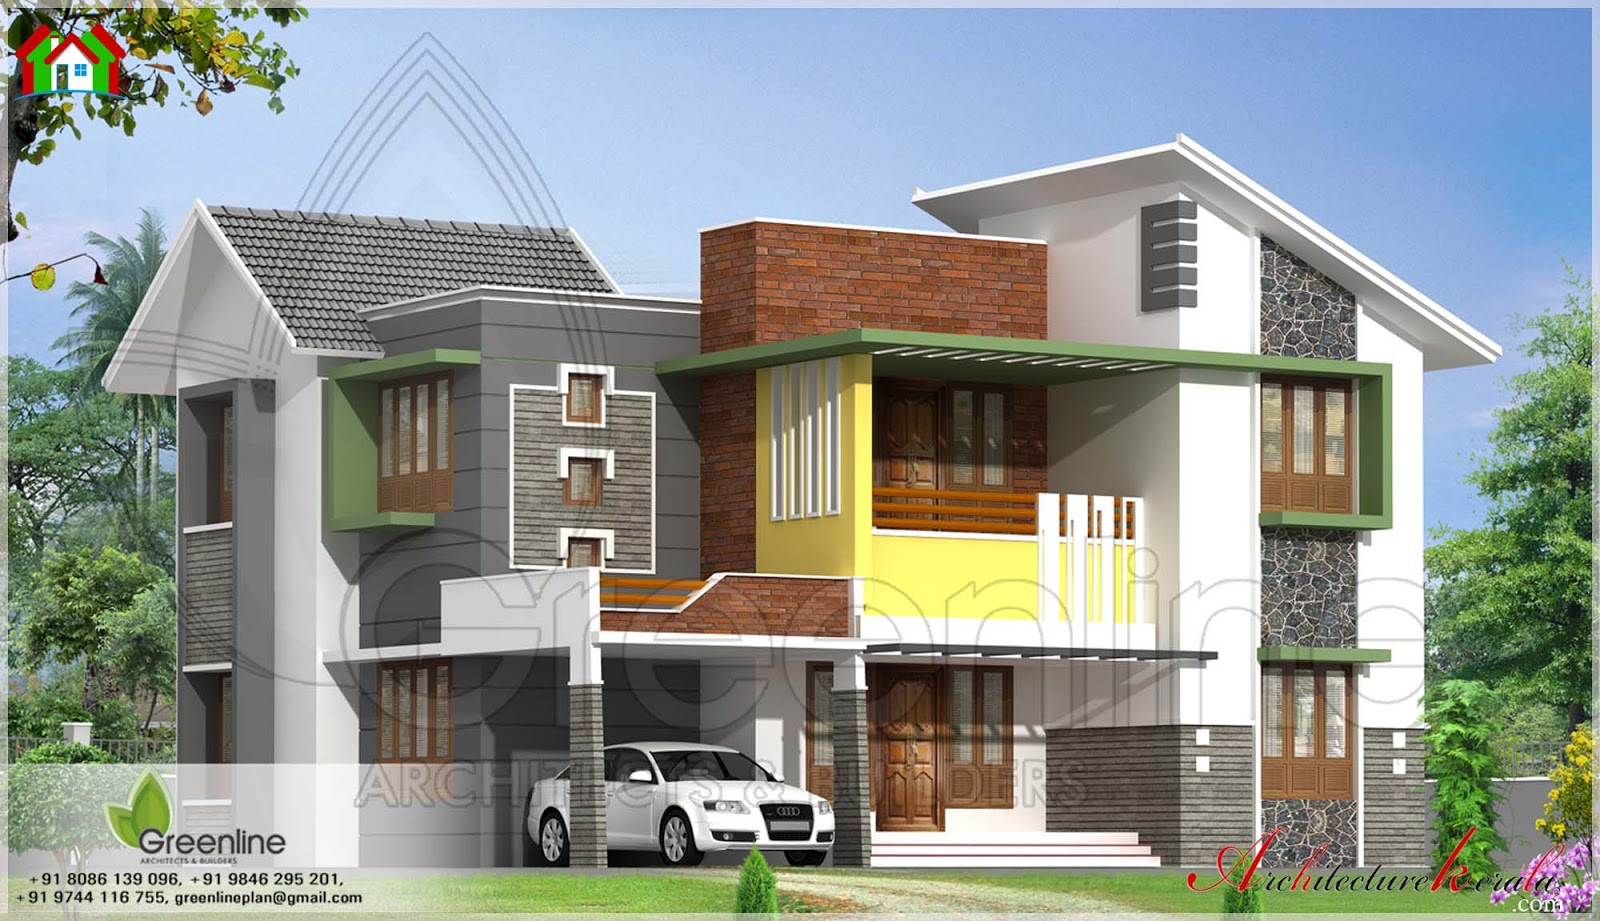 Contemporary Architecture Design Kerala Designs House Home C In